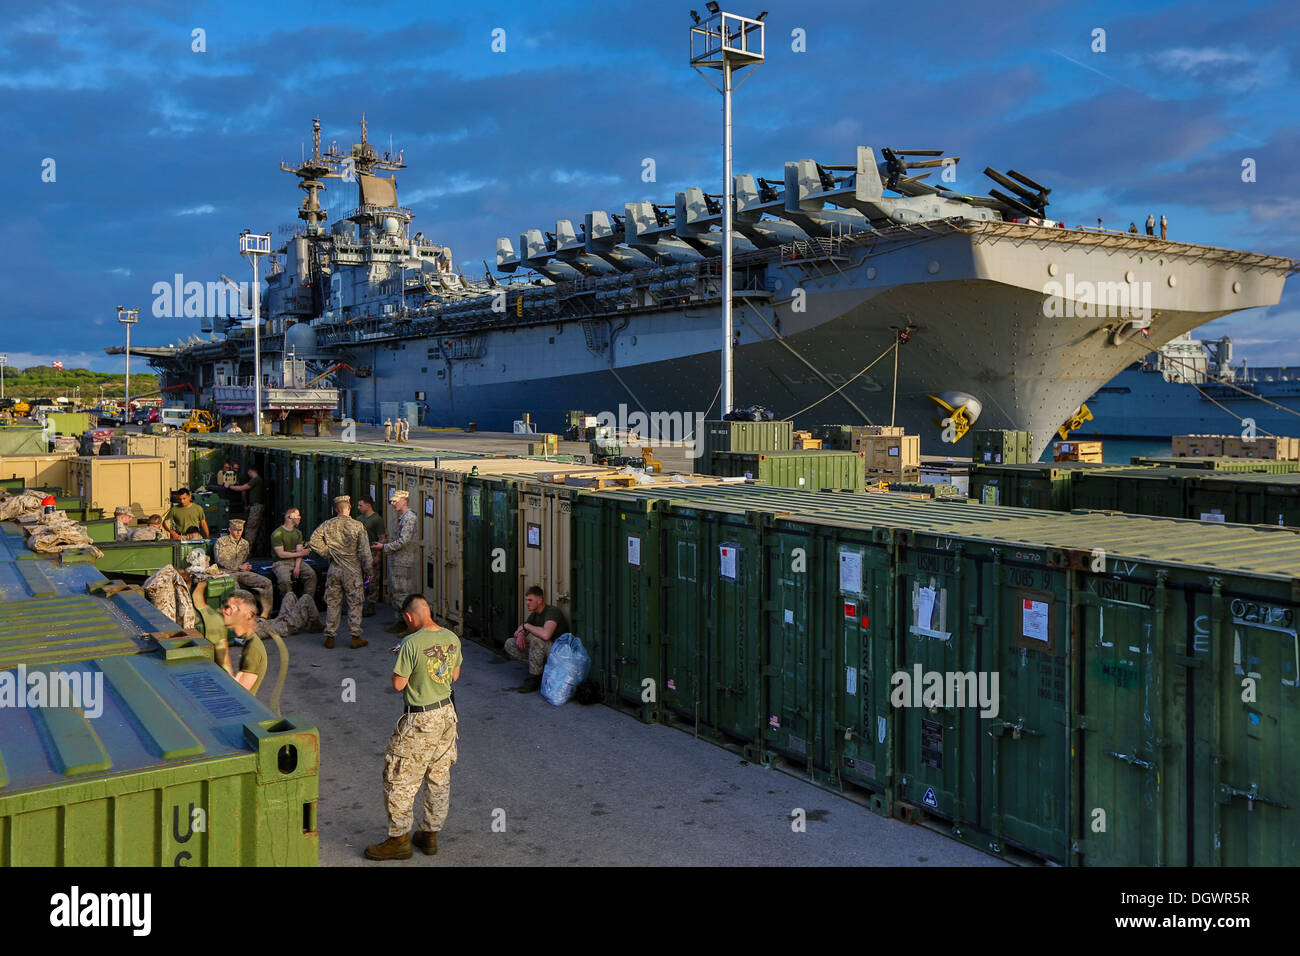 U.S. Marines and Sailors assigned to 26th Marine Expeditionary Unit (MEU) stand by to have their shipping containers inspected by U.S. Customs agents during the 26th MEU's wash down in Naval Station Rota, Spain, Oct. 19, 2013. The 26th MEU is a Marine Air - Stock Image